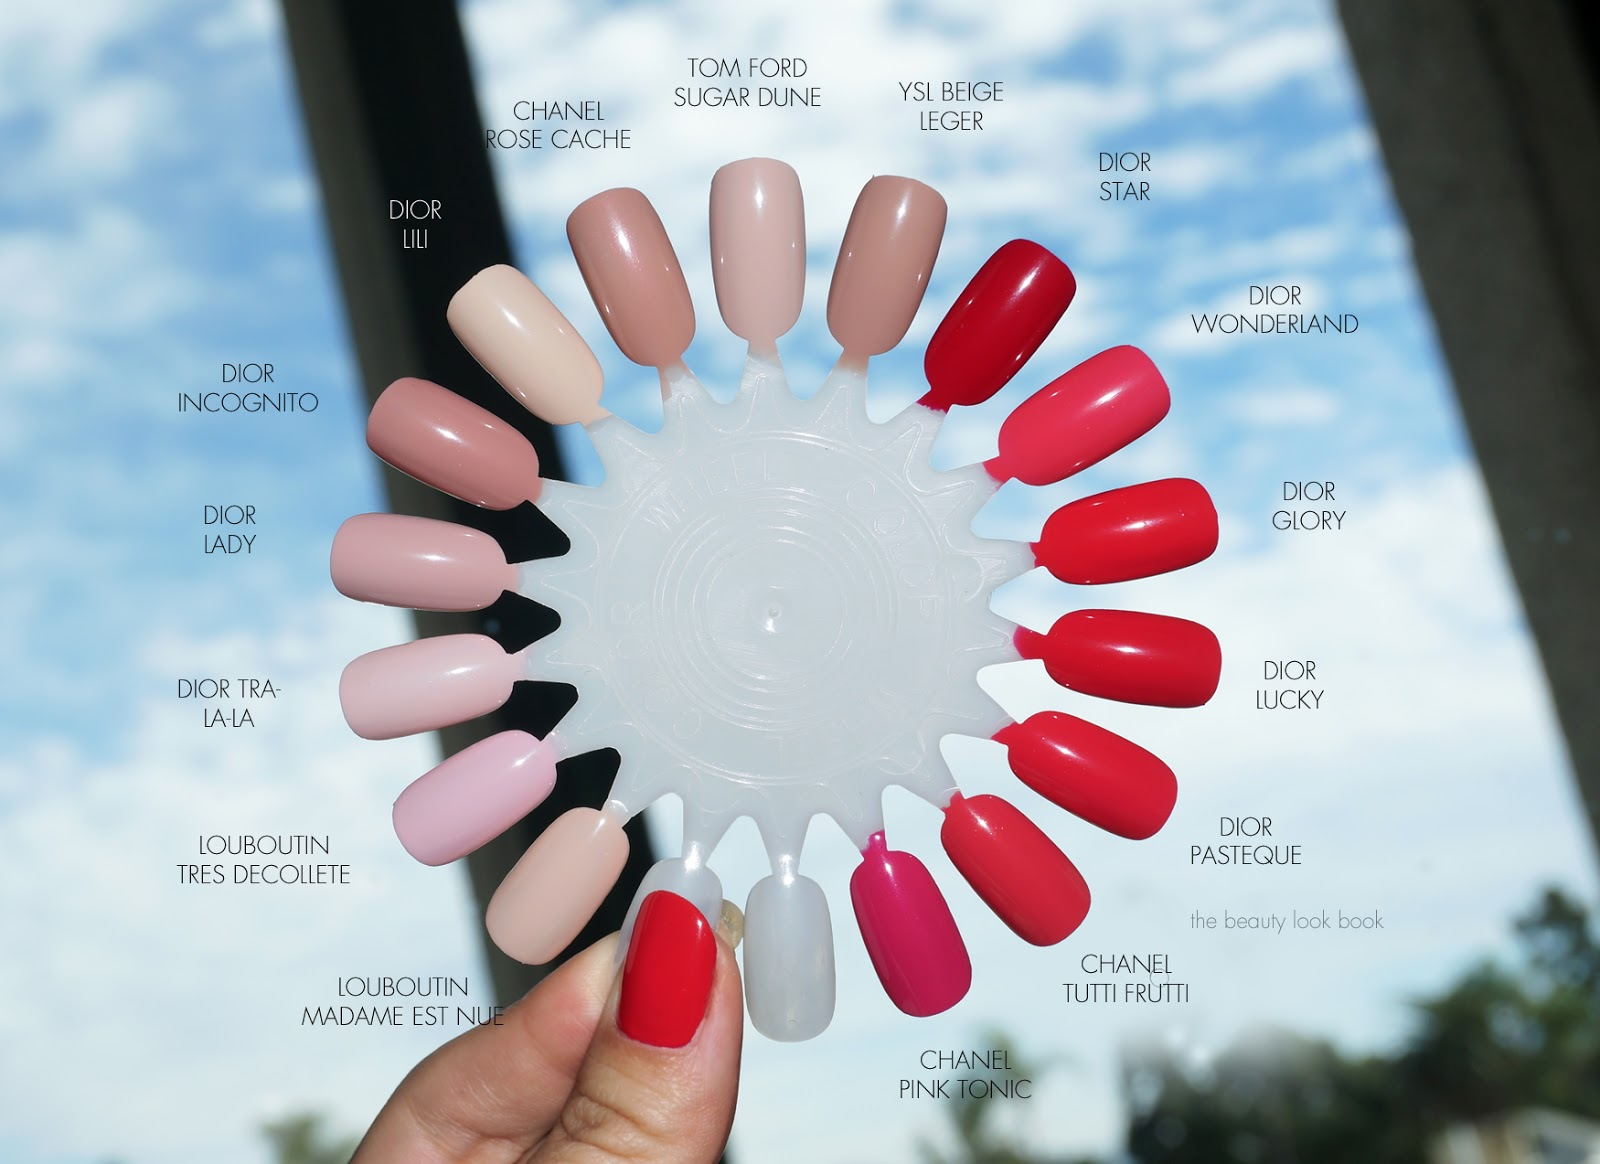 The Beauty Look Book Dior Vernis Kingdom Of Colors Lady And Glory Comparisons